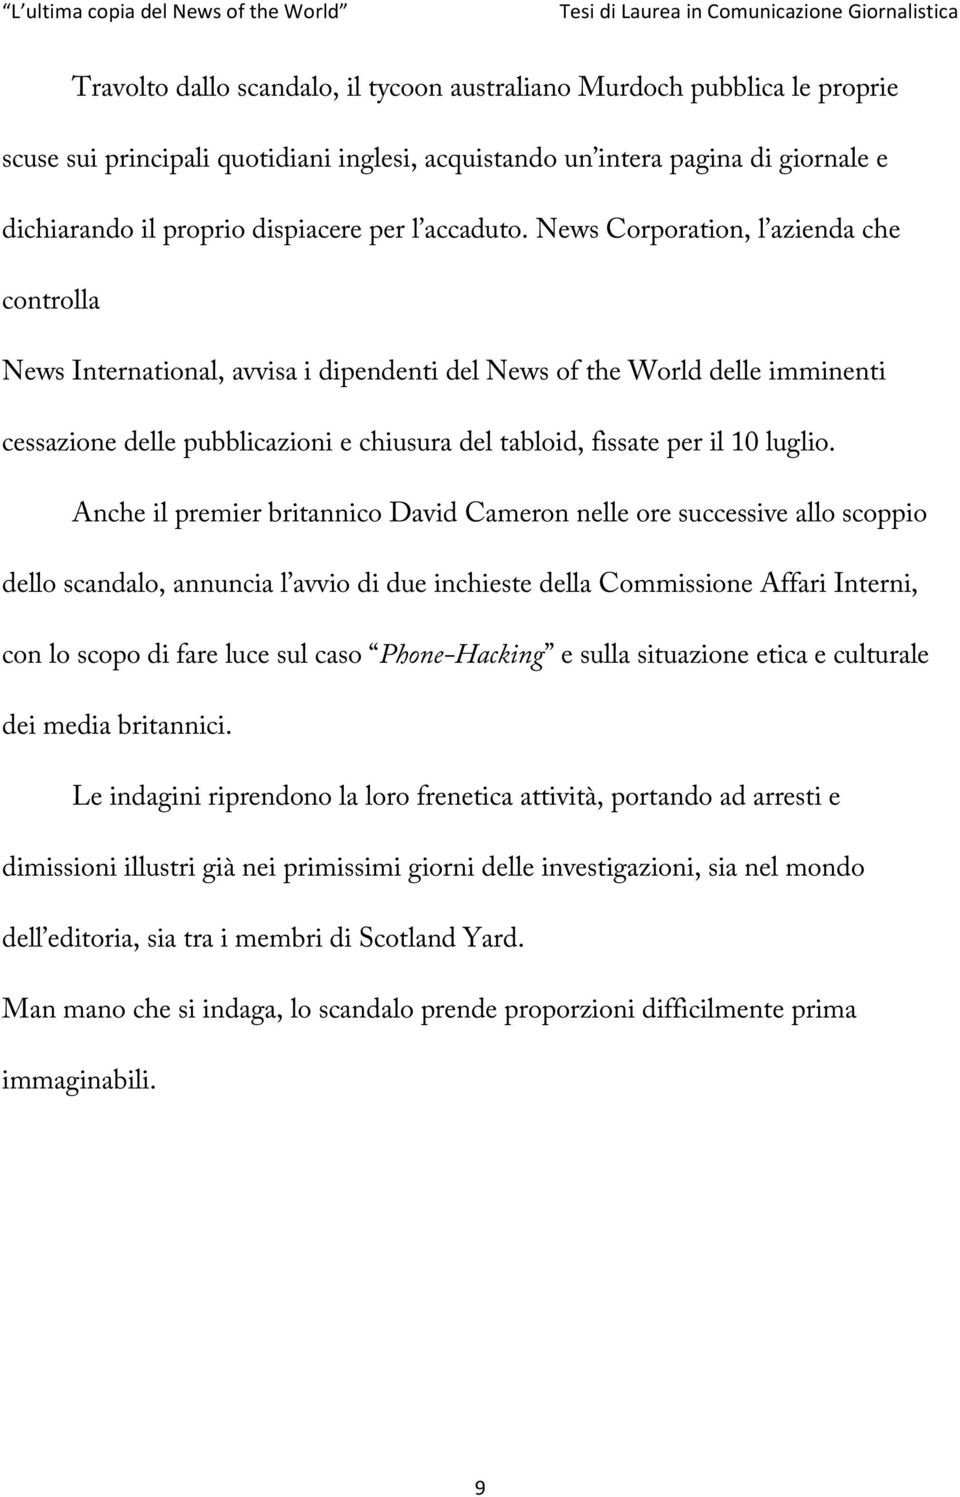 News Corporation, l azienda che controlla News International, avvisa i dipendenti del News of the World delle imminenti cessazione delle pubblicazioni e chiusura del tabloid, fissate per il 10 luglio.